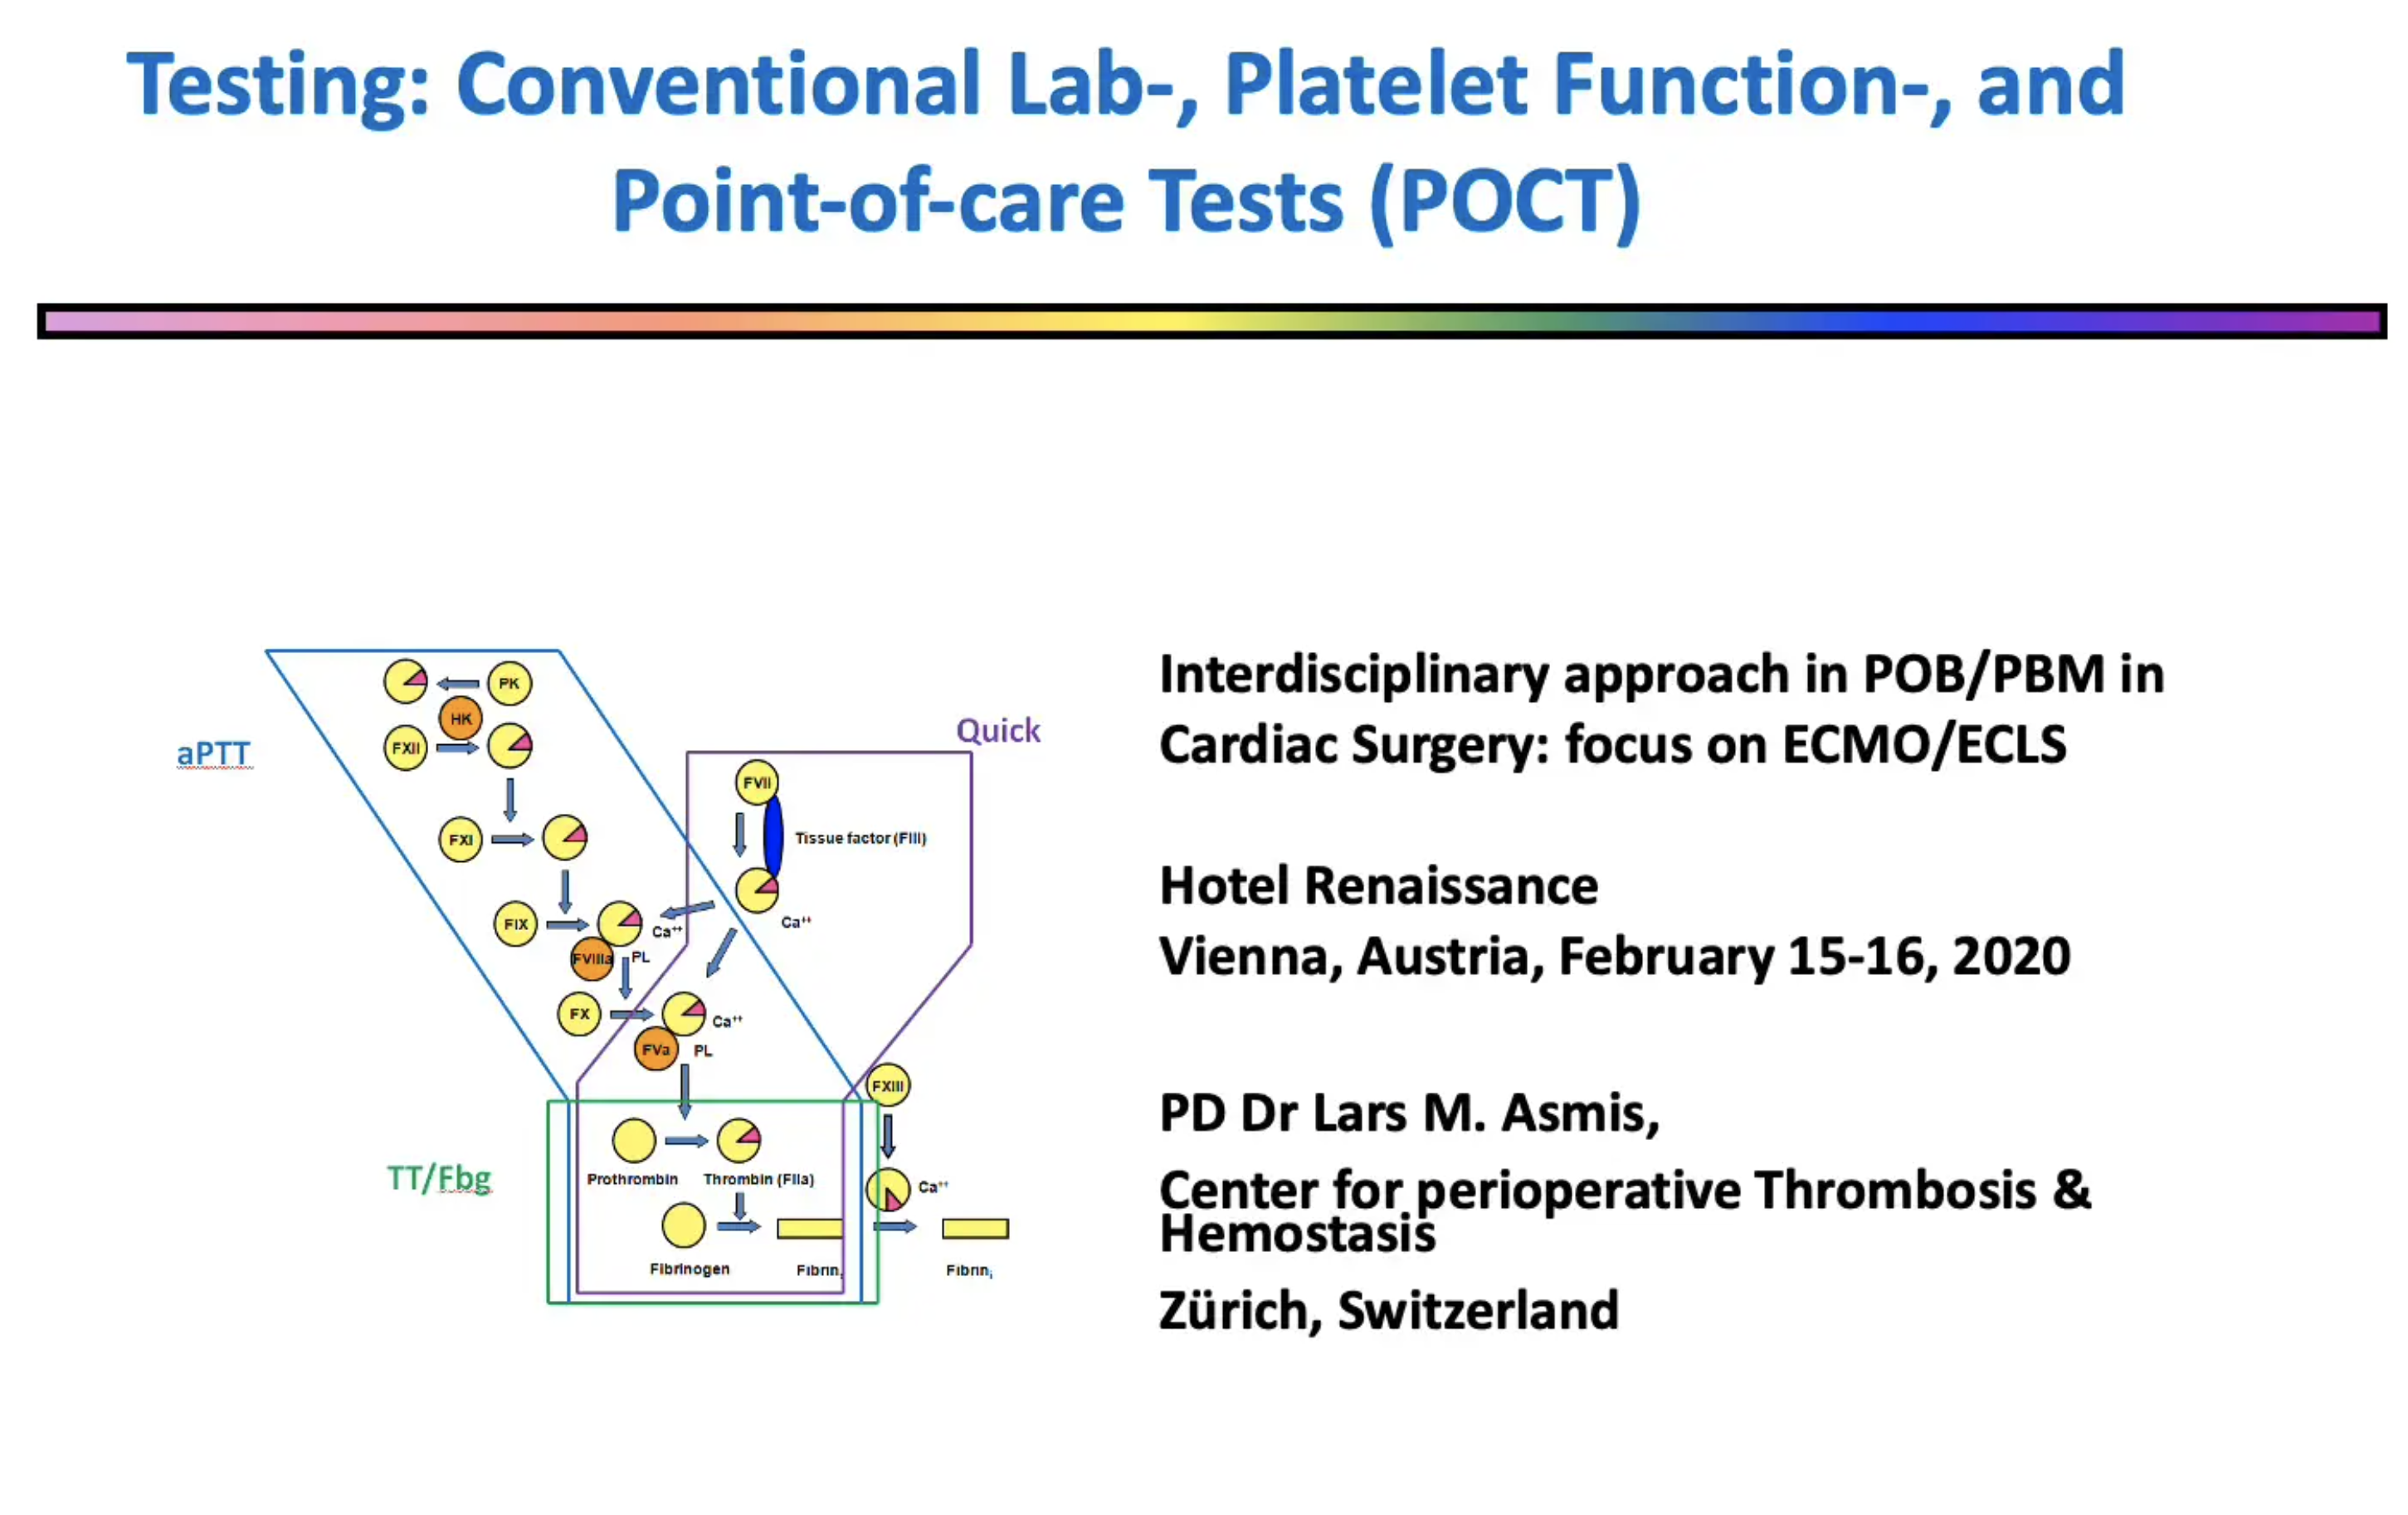 testing-conventional-lab-platelet-function-and-point-of-care-tests